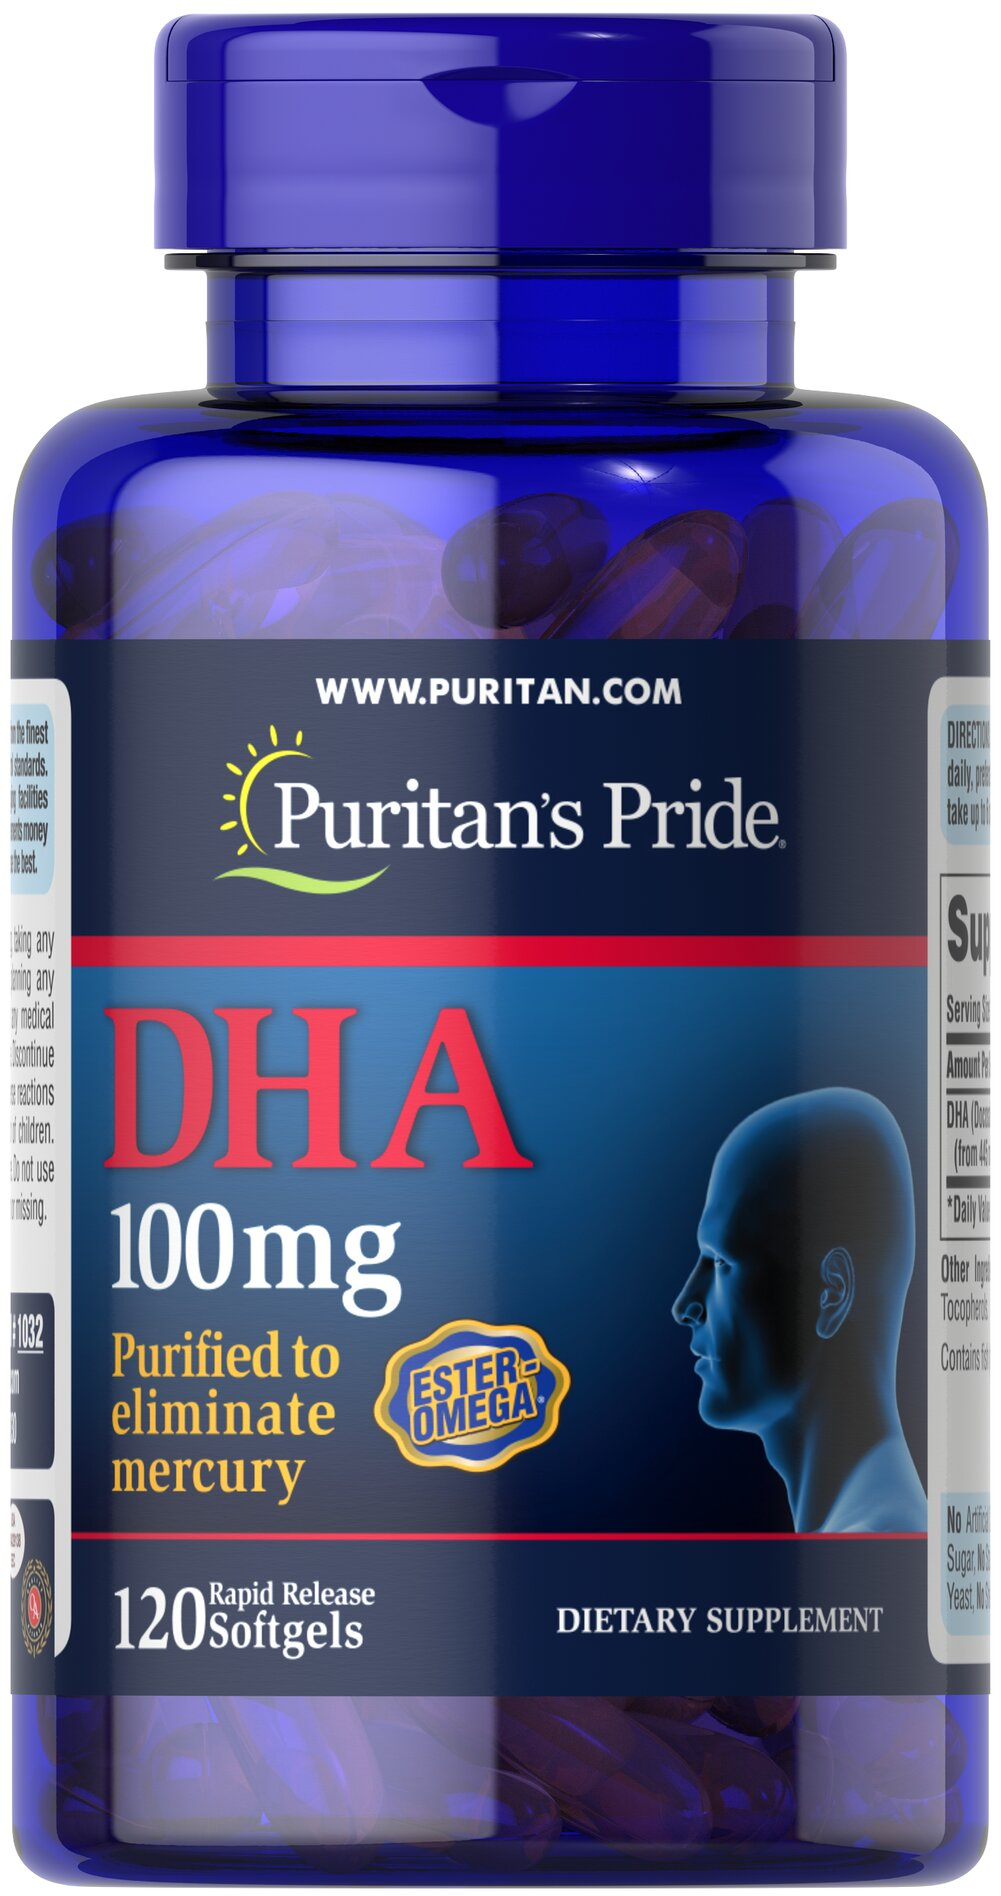 DHA 100 mg <p>DHA (Docosahexaenoic Acid) is an important Omega-3 fatty acid.</p><p>These softgels are made with Ester Omega™, a highly concentrated and purified Omega-3 fish oil selected from the finest deep sea, cold water fish. </p><p>Ester Omega™ is scientifically formulated in an antioxidant matrix to enhance potency. </p><p>Ester Omega™ provides superior absorption of Omega-3 fatty acids – like DHA – by the body. </p><p>These rapid relea